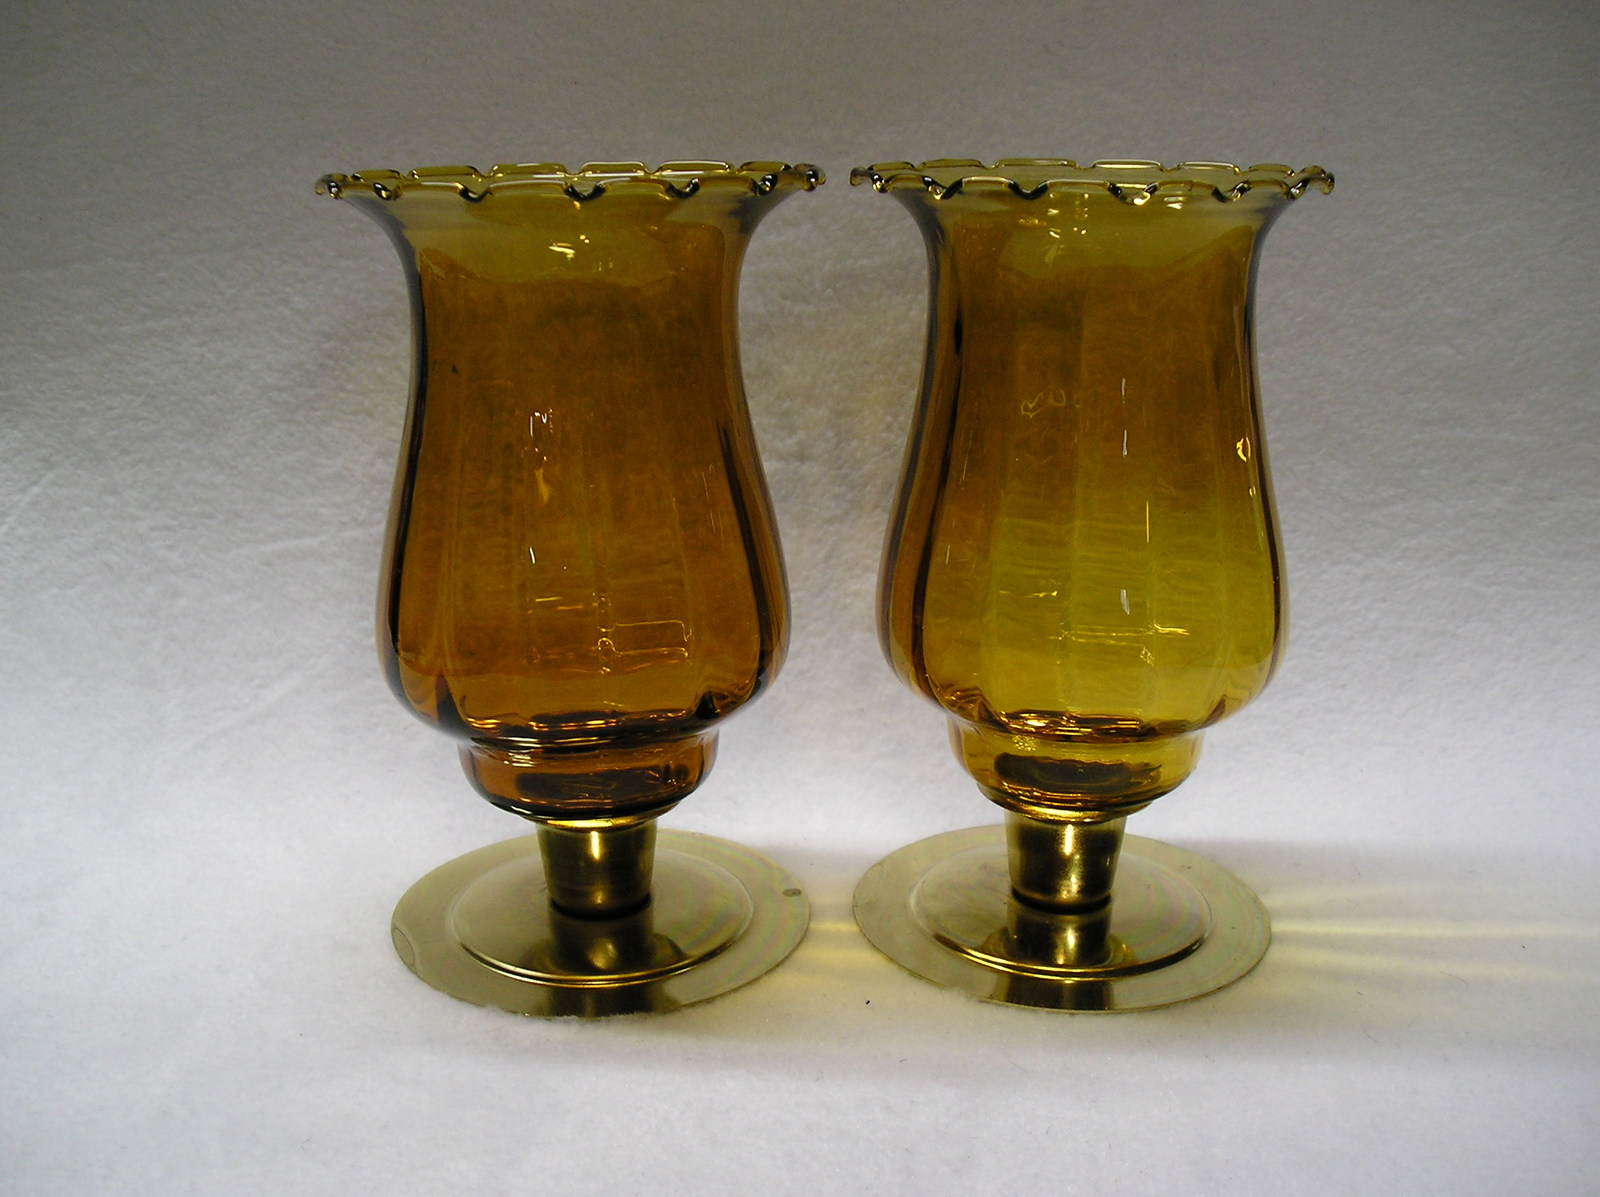 Primary image for 3 Homco 1195-1 Amber Classique Crimped Edge Peg Votive Cup Candle Holders